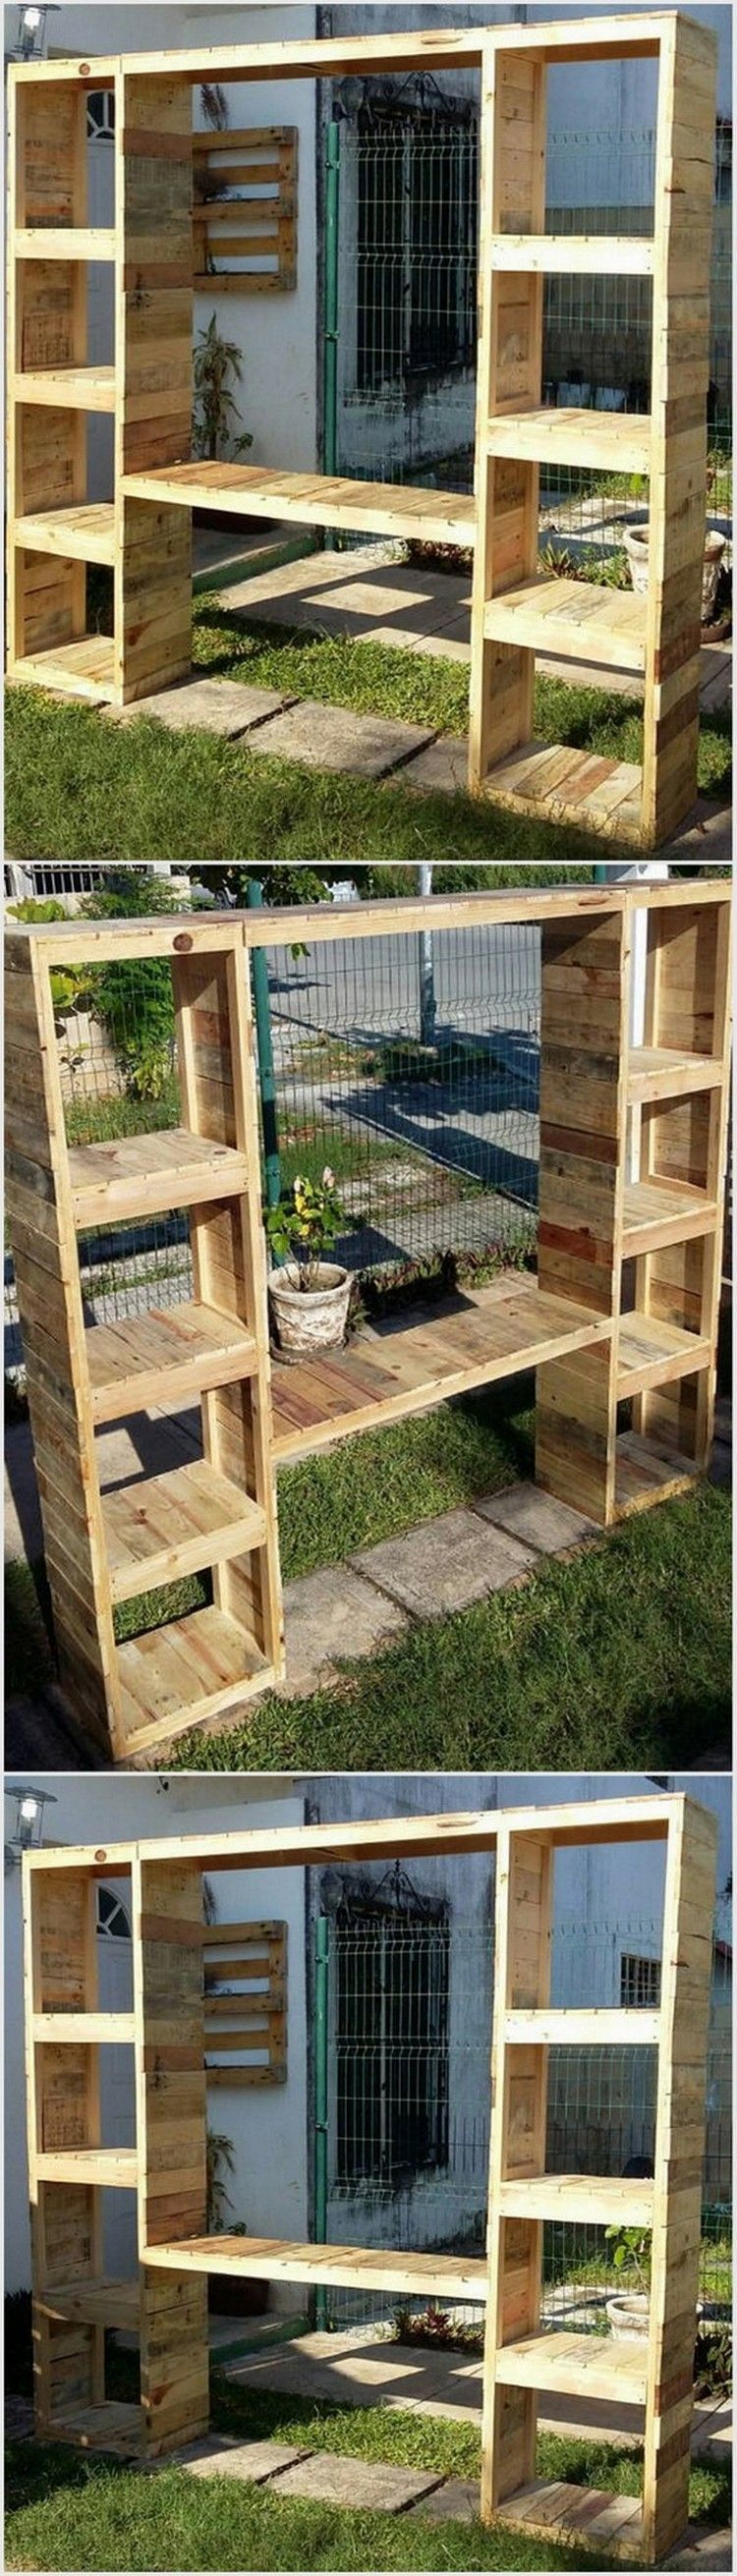 Pallet Projects There Are Many Sources From Where You Can